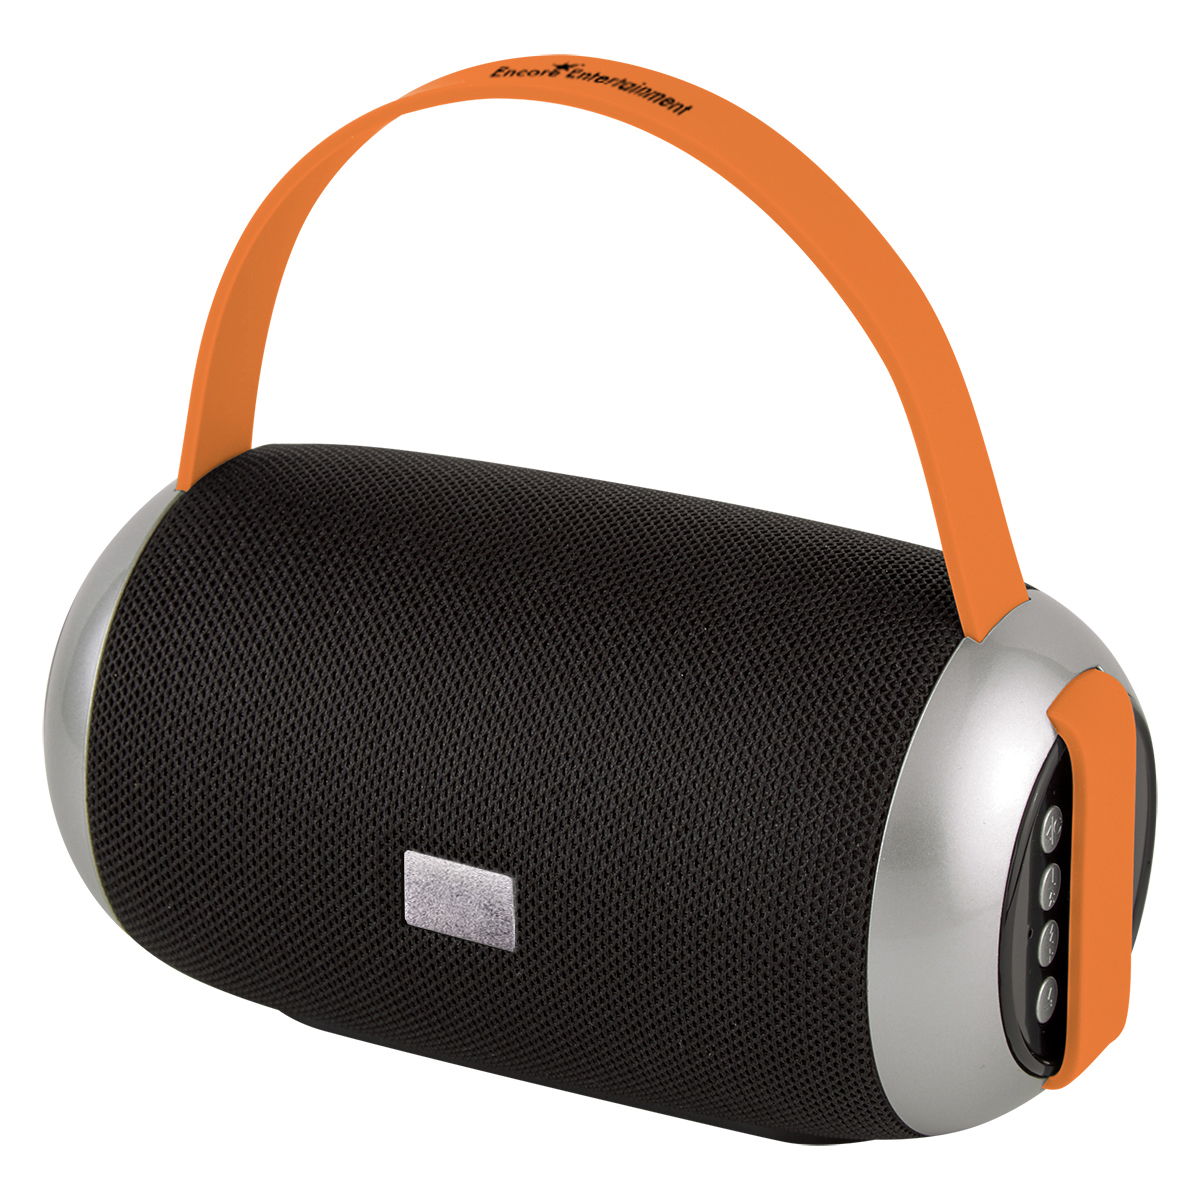 Jam Sesh Orange Wireless Speaker